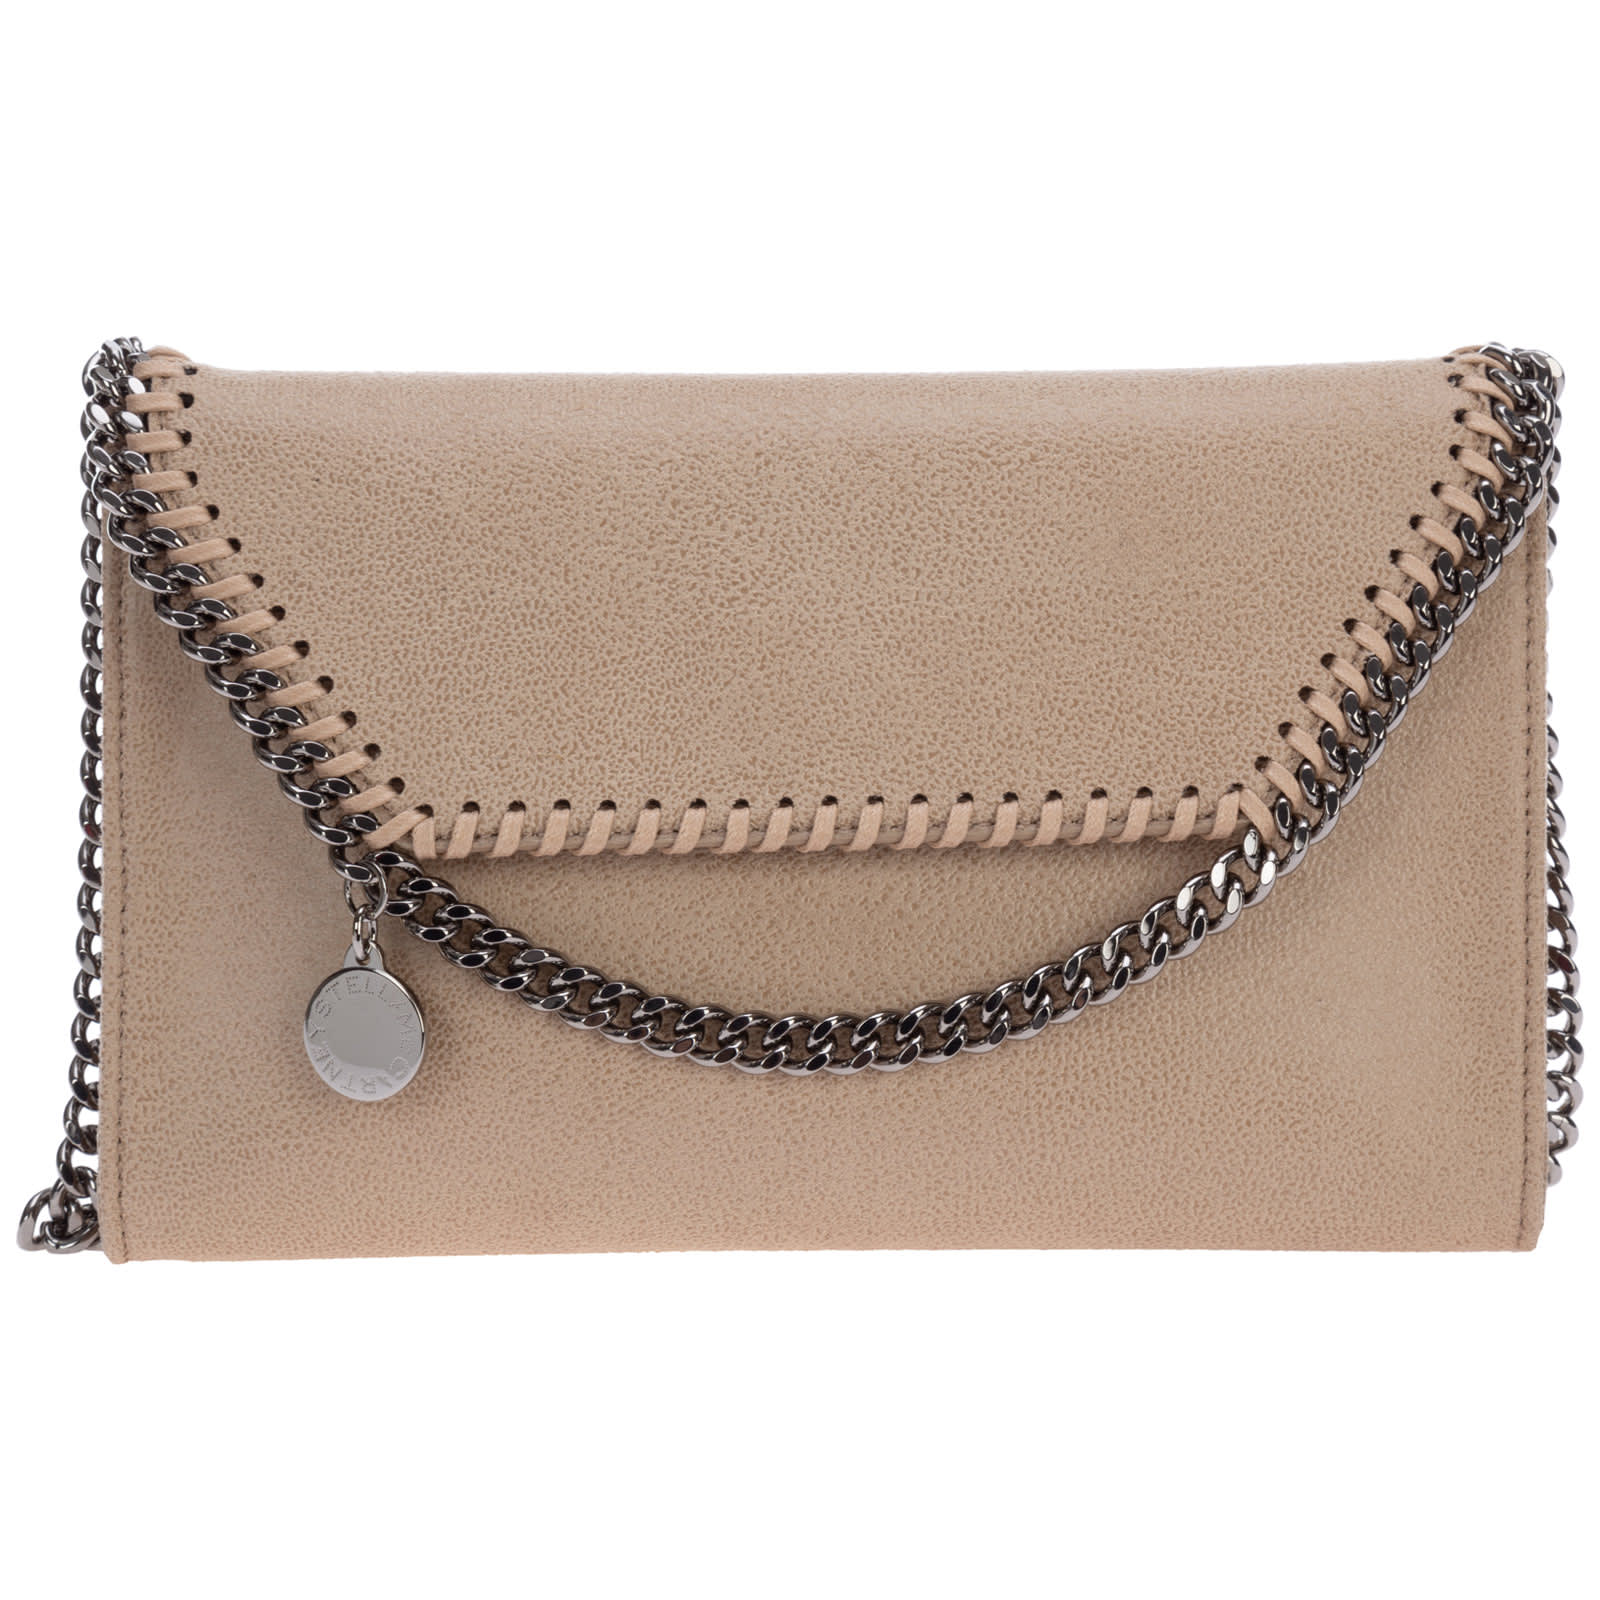 Stella Mccartney FALABELLA MINI CROSSBODY BAGS